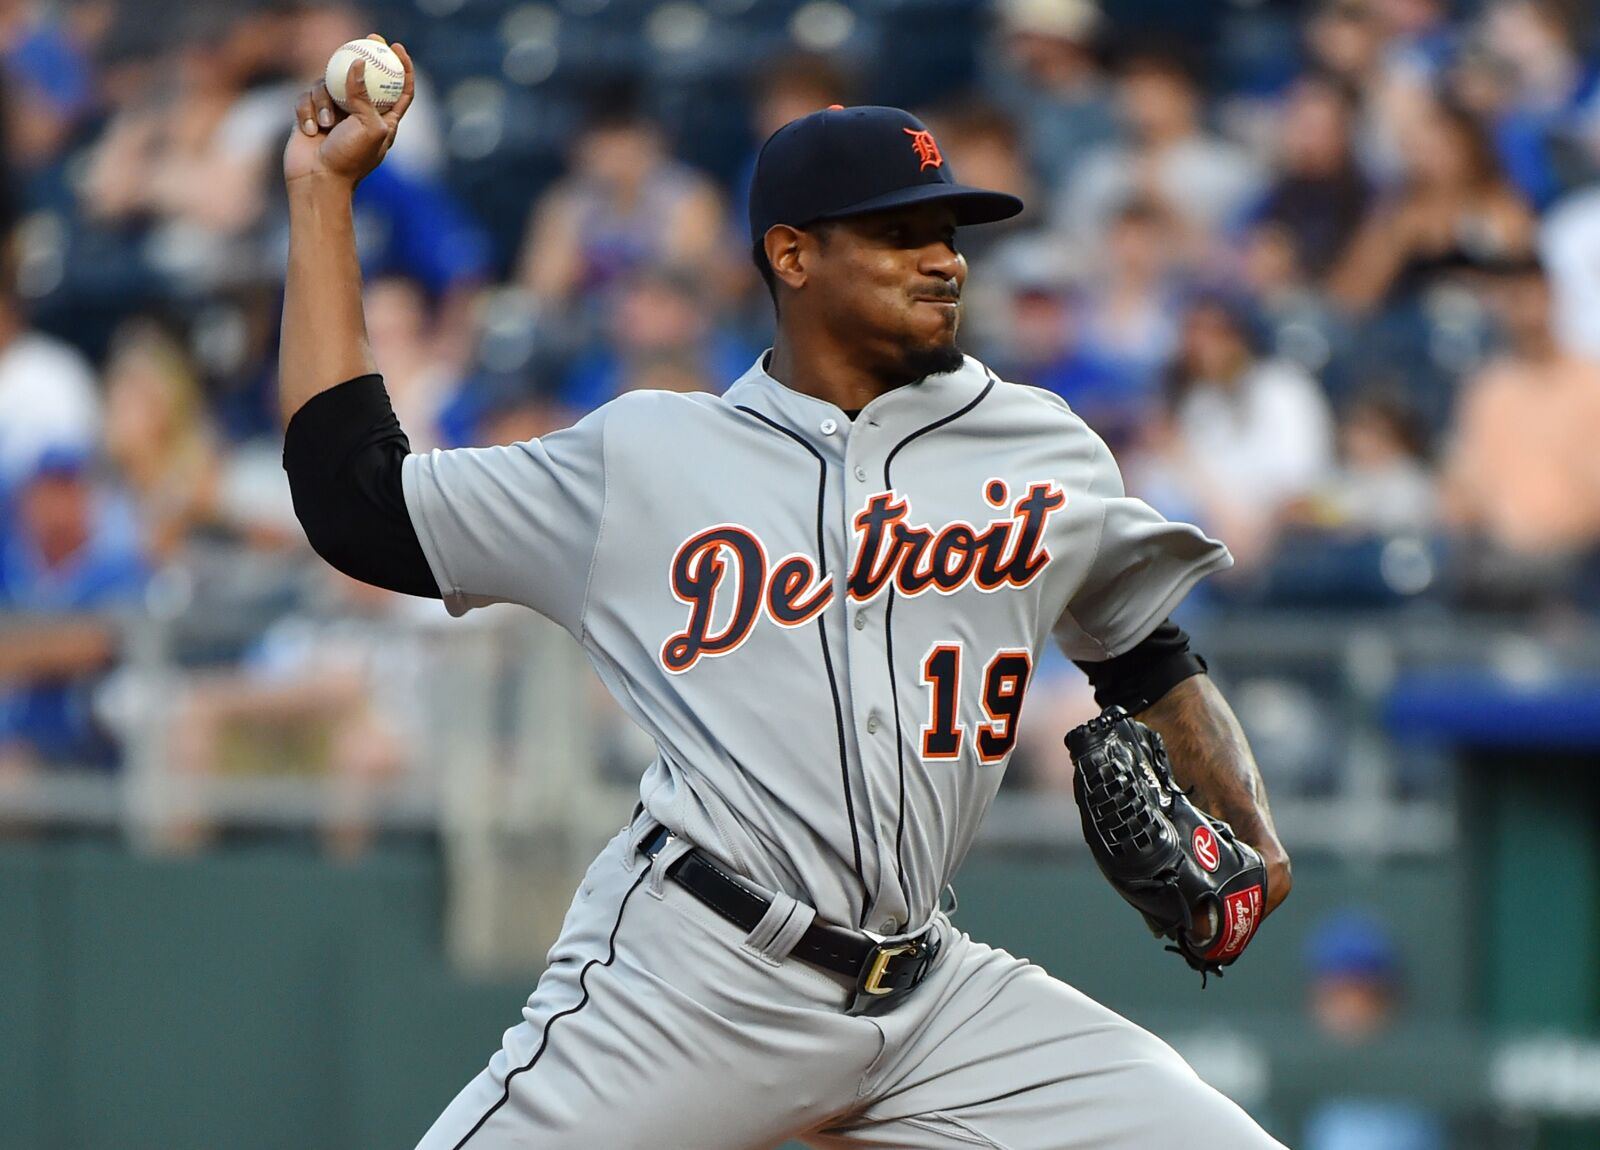 Detroit Tigers: Edwin Jackson plans to continue playing